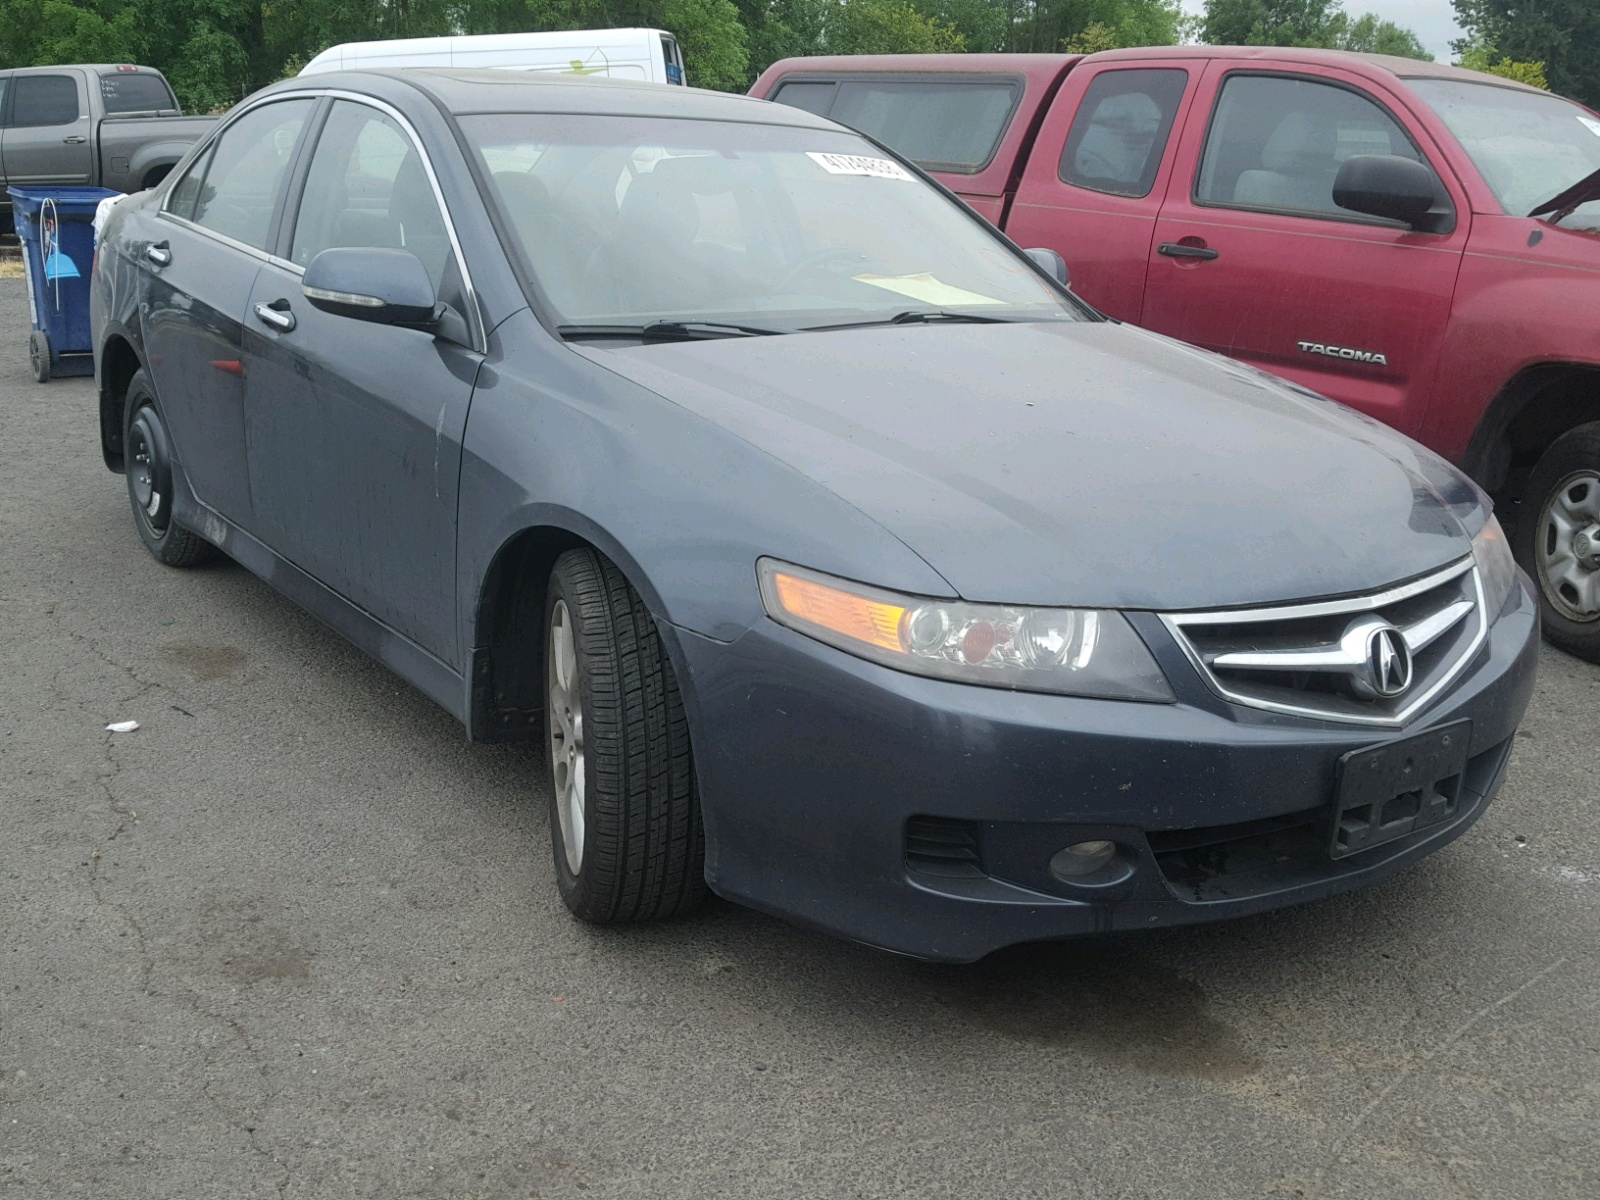 Salvage 2006 Acura TSX for sale